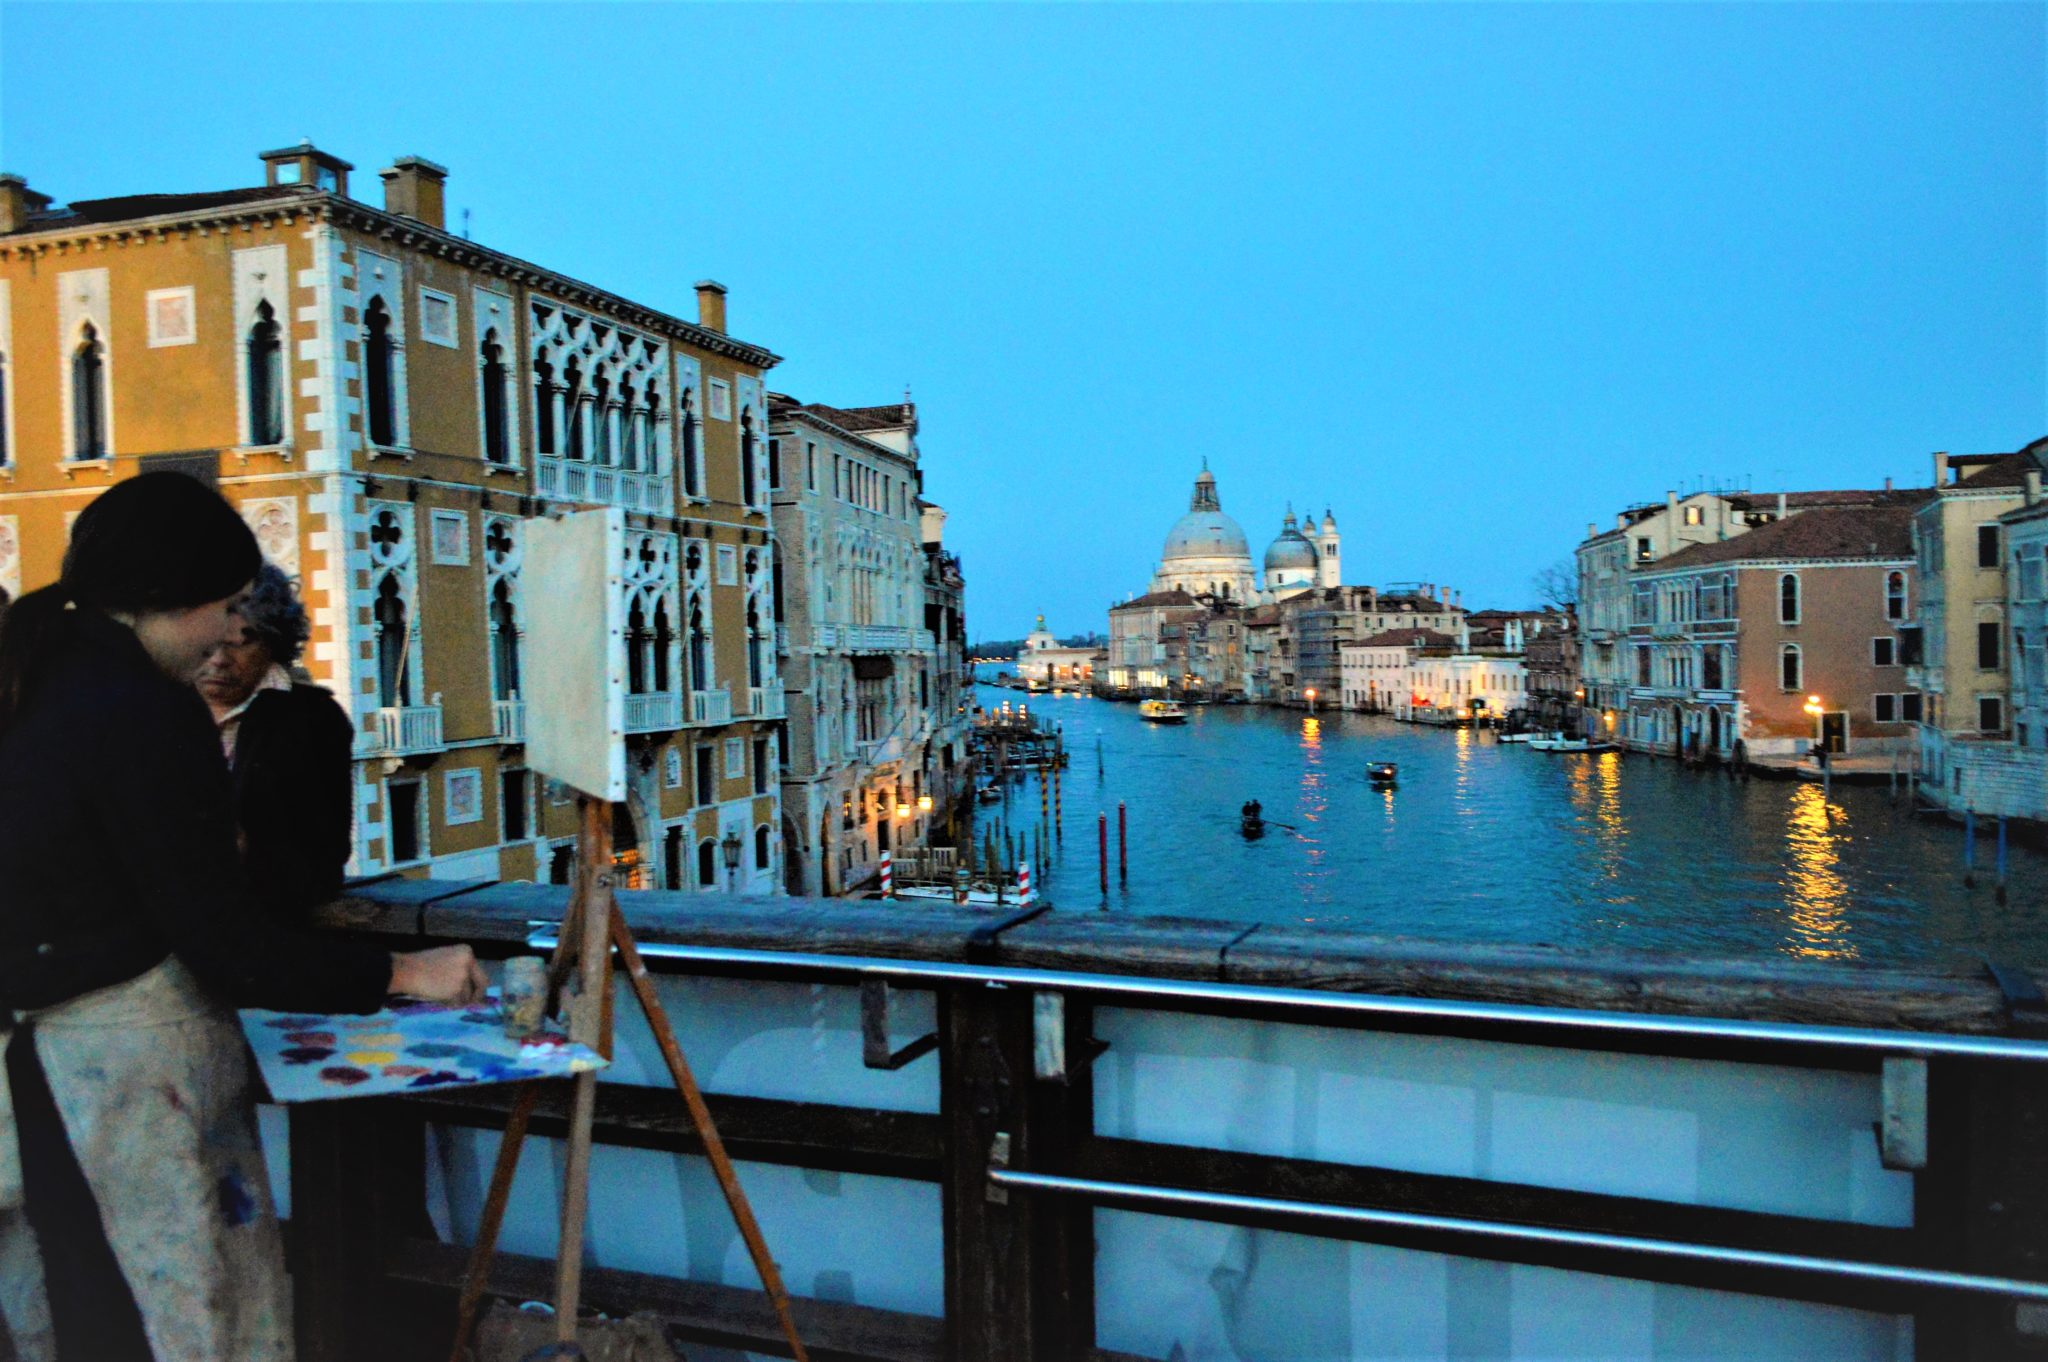 Artist on Academia Bridge, Venice, Italy